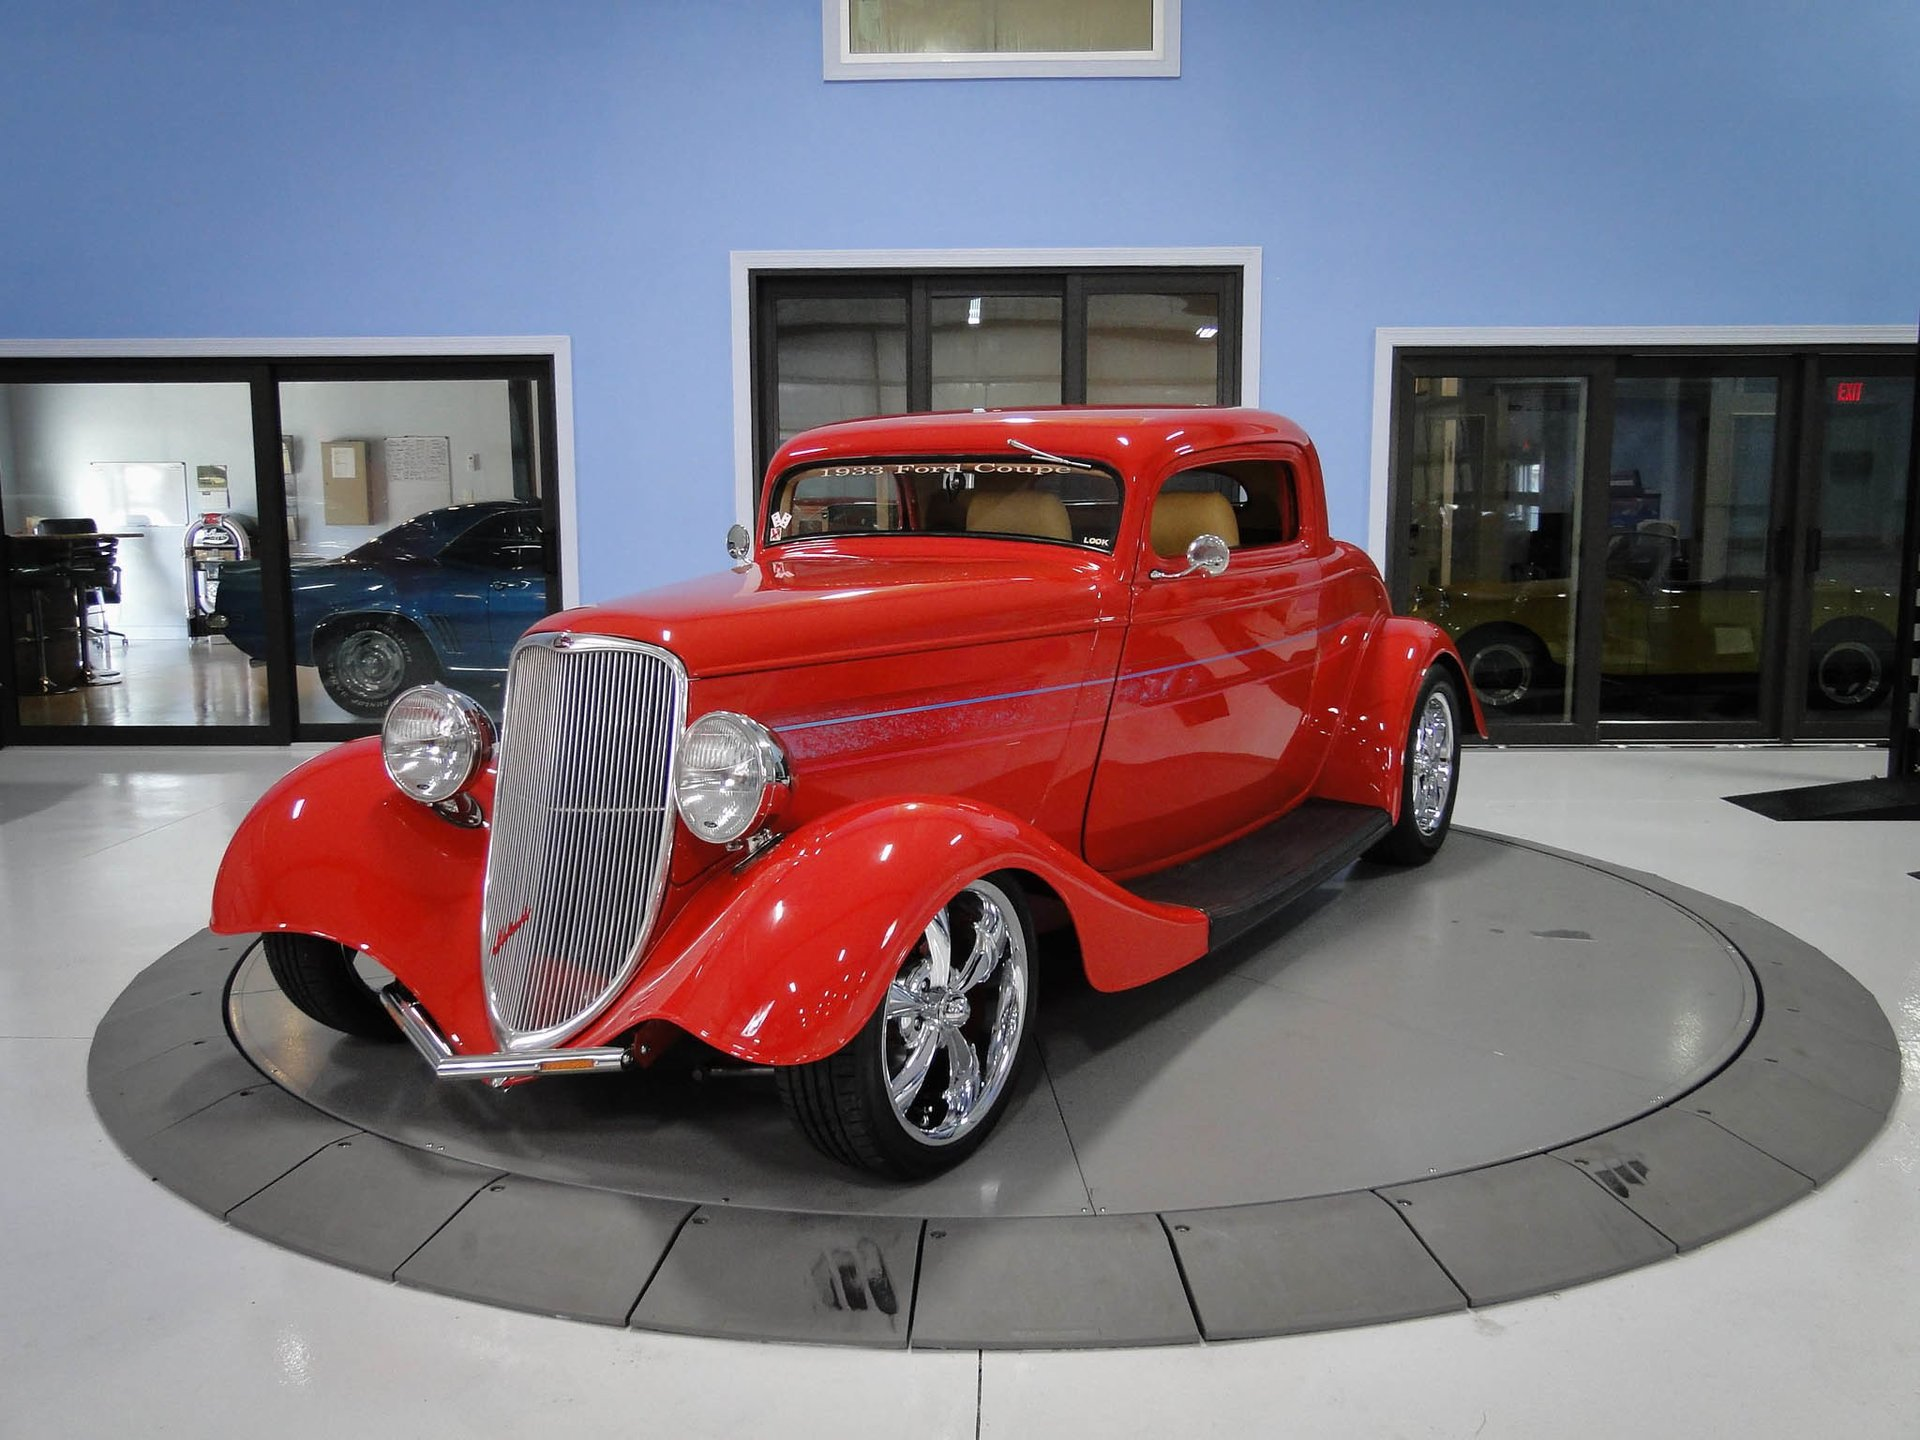 1933 ford 3 window coupe classic cars used cars for sale in tampa fl. Black Bedroom Furniture Sets. Home Design Ideas